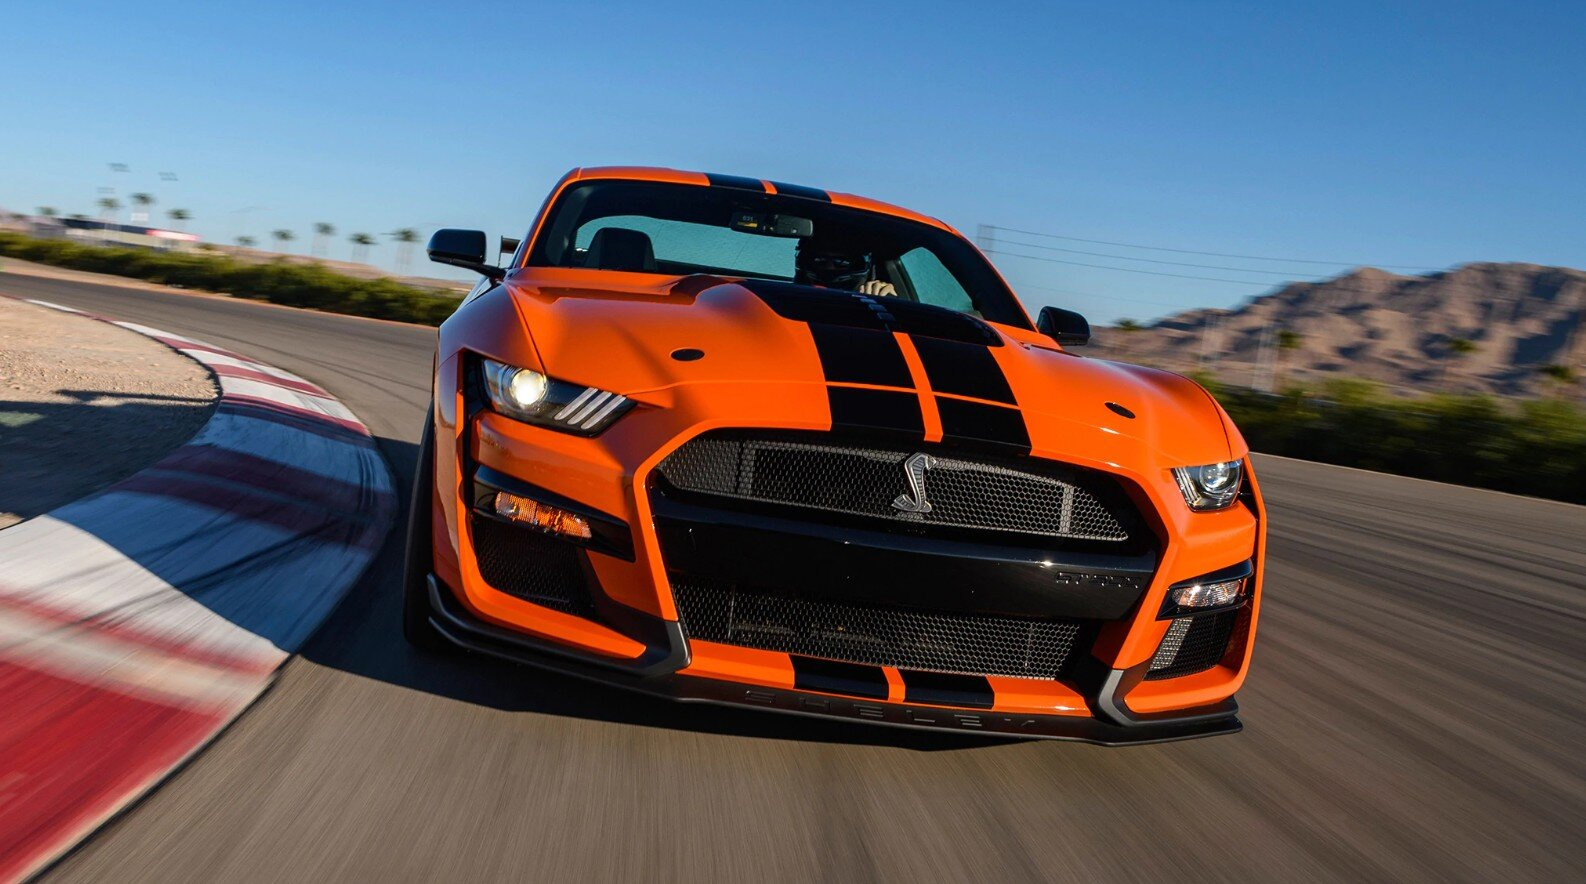 2020-ford-mustang-shelby-gt500-first-drive-review-automobile.jpg